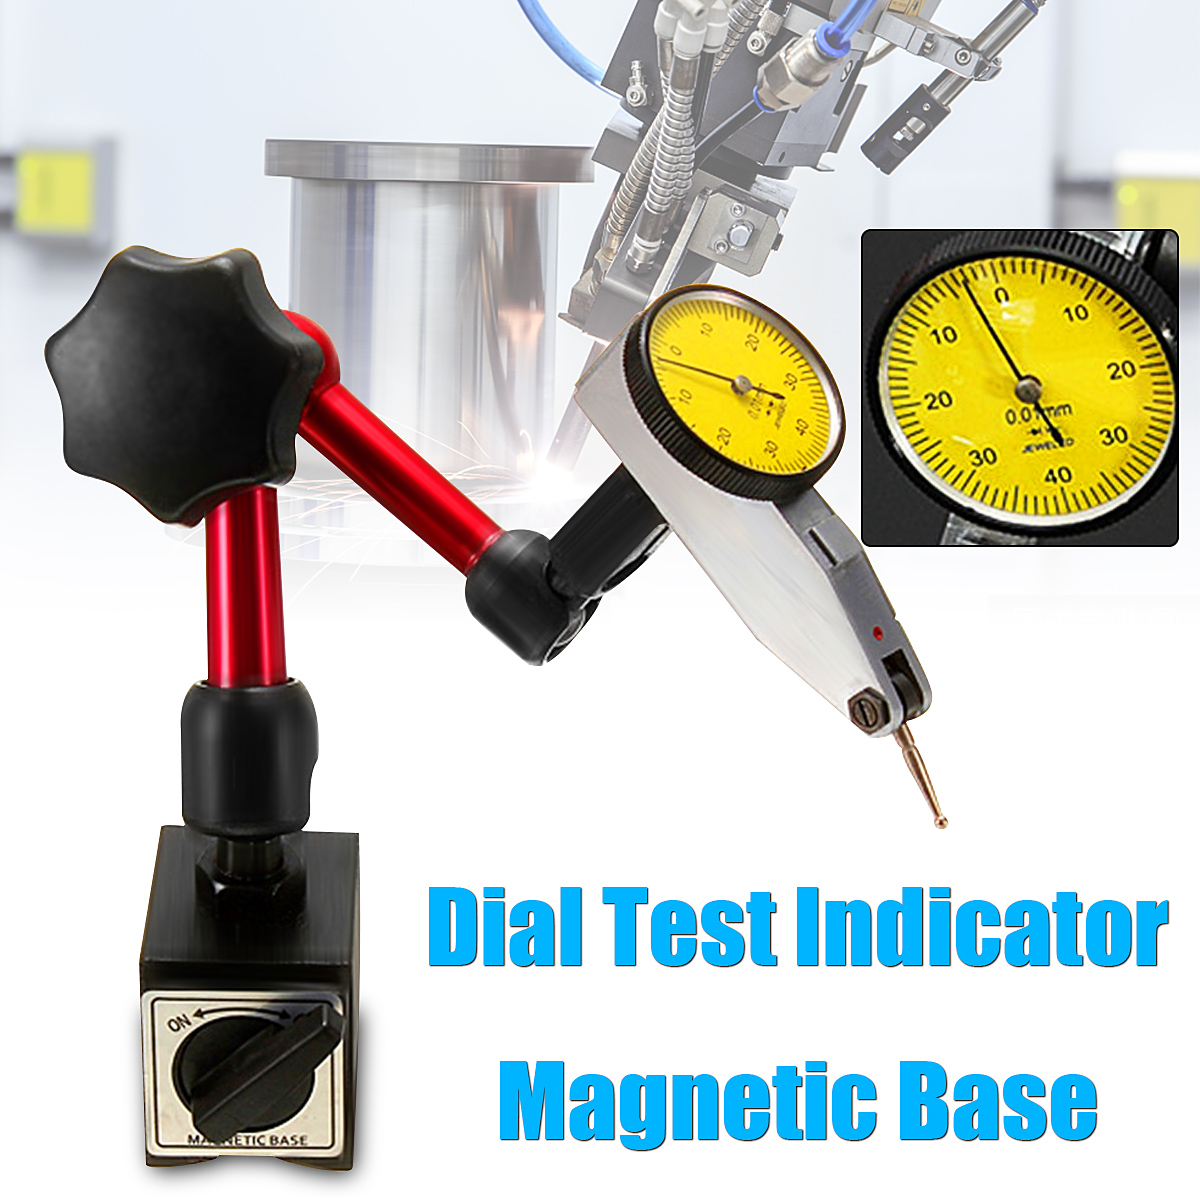 Mini Universal Flexible Dial Test Indicator Magnetic Base Holder Stand Dial Test Indicator Tool Magnetic Correction Gauge Stand